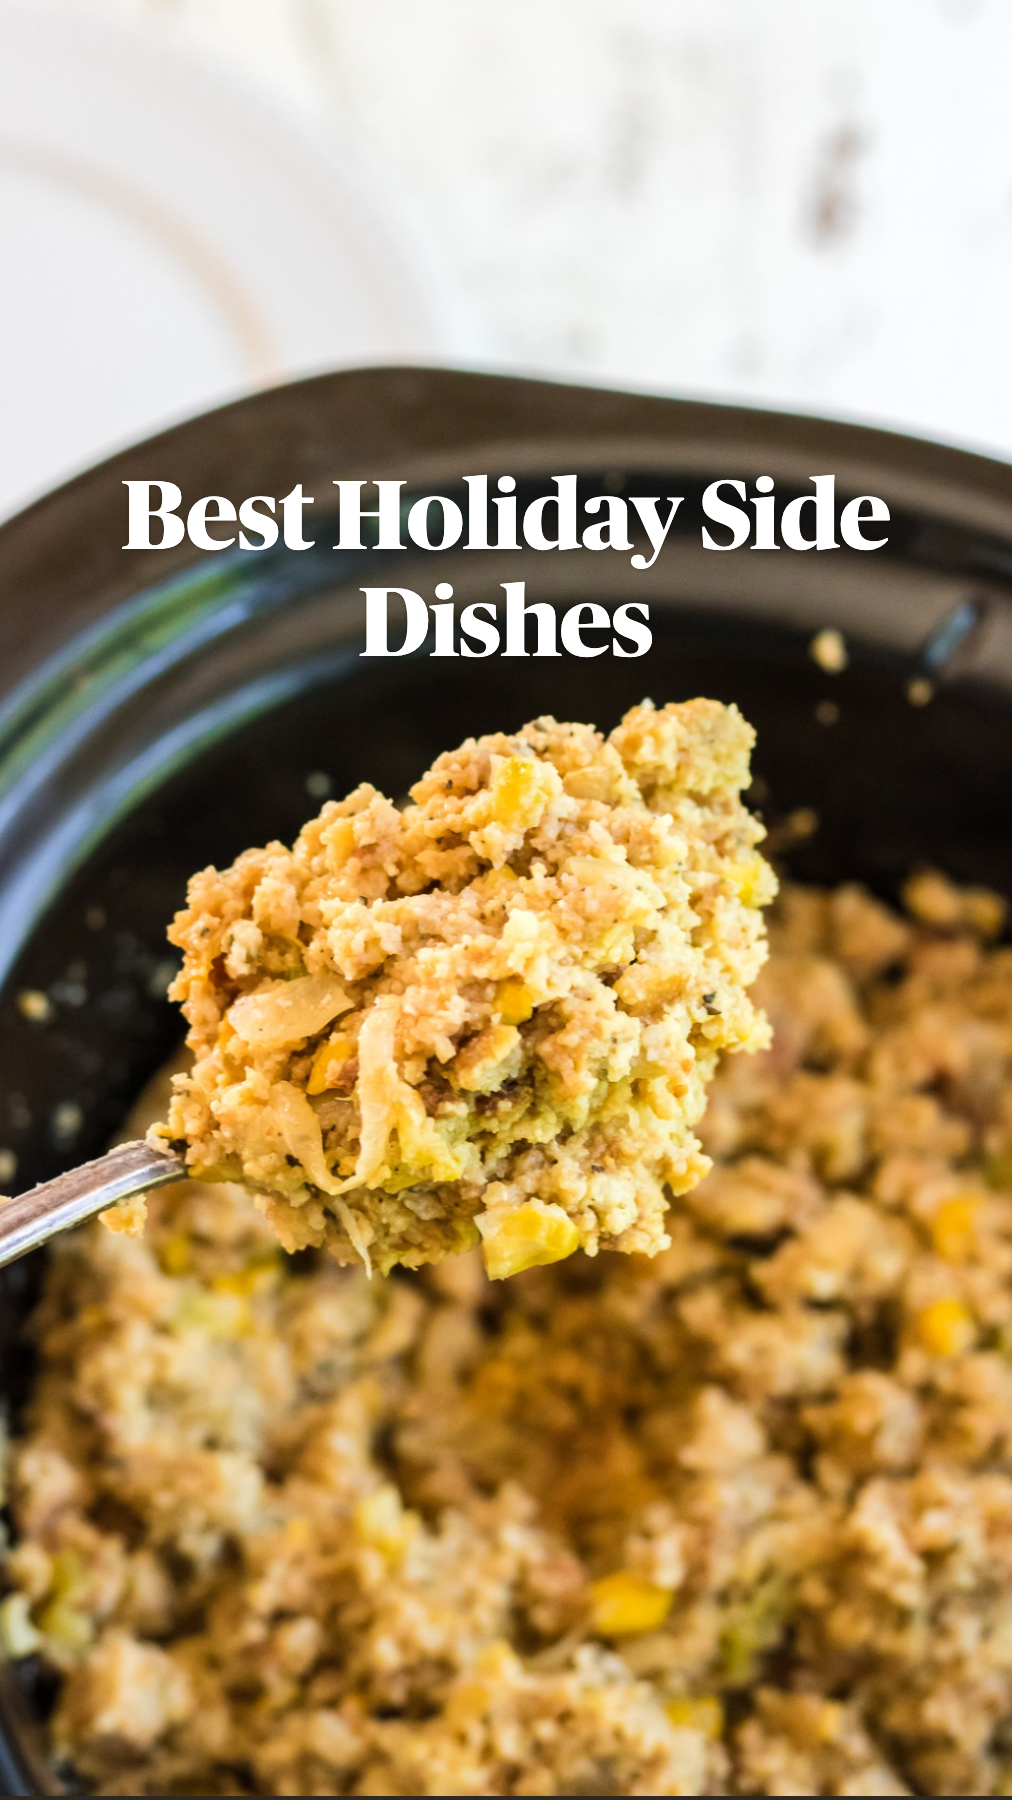 Best Holiday Side Dishes